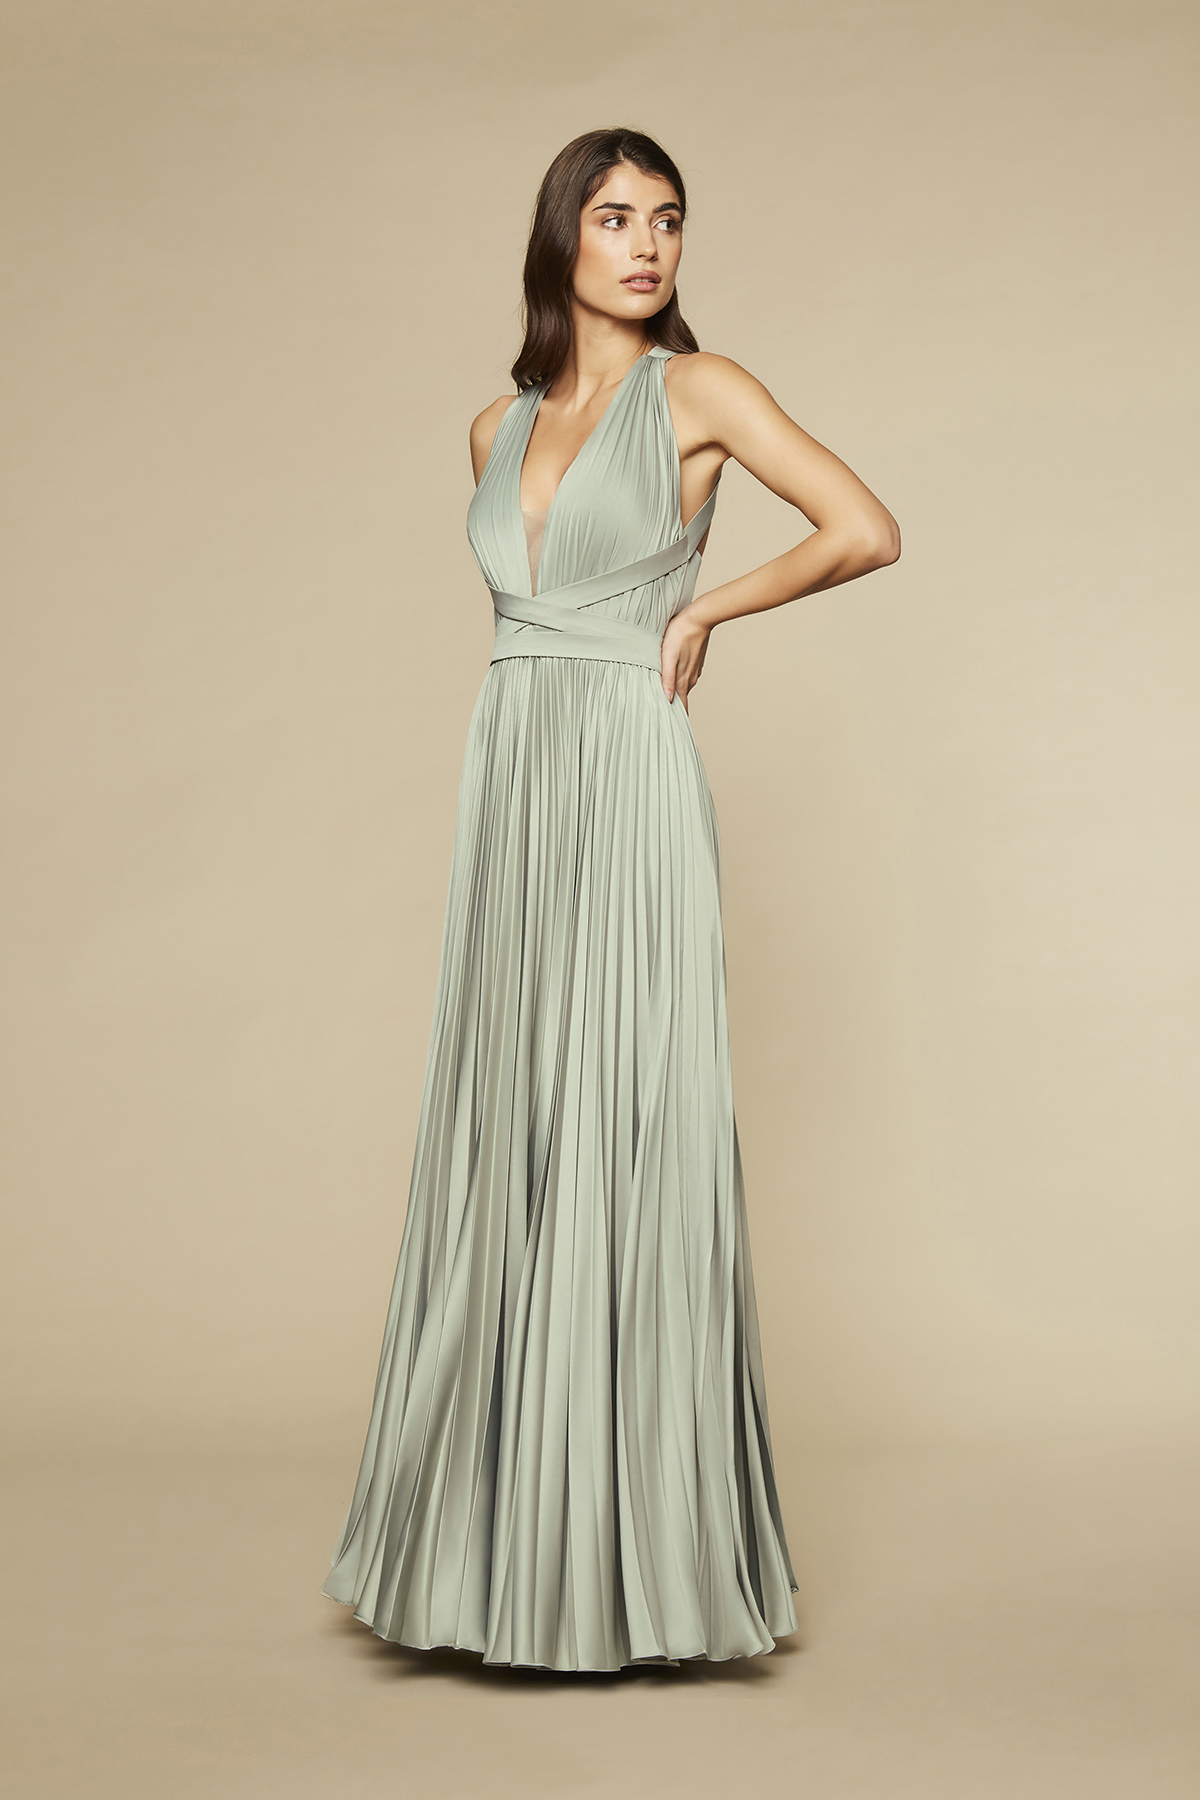 SATIN PLEATS DRESS